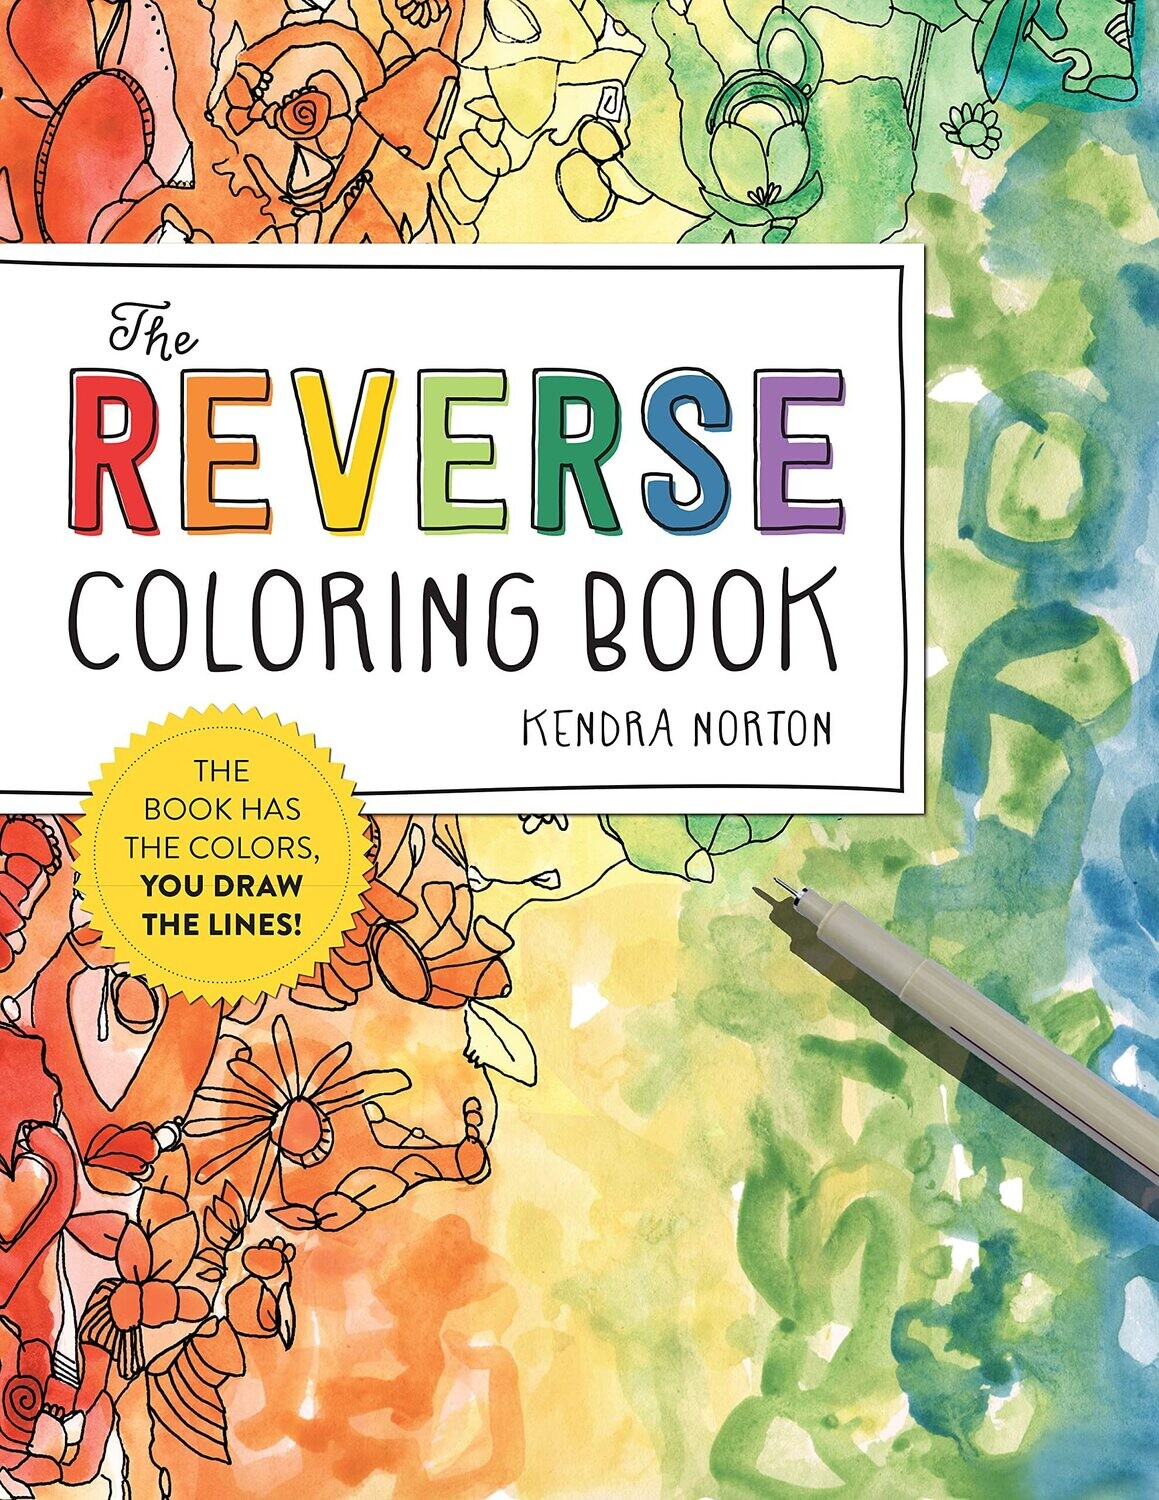 The Reverse Coloring Book